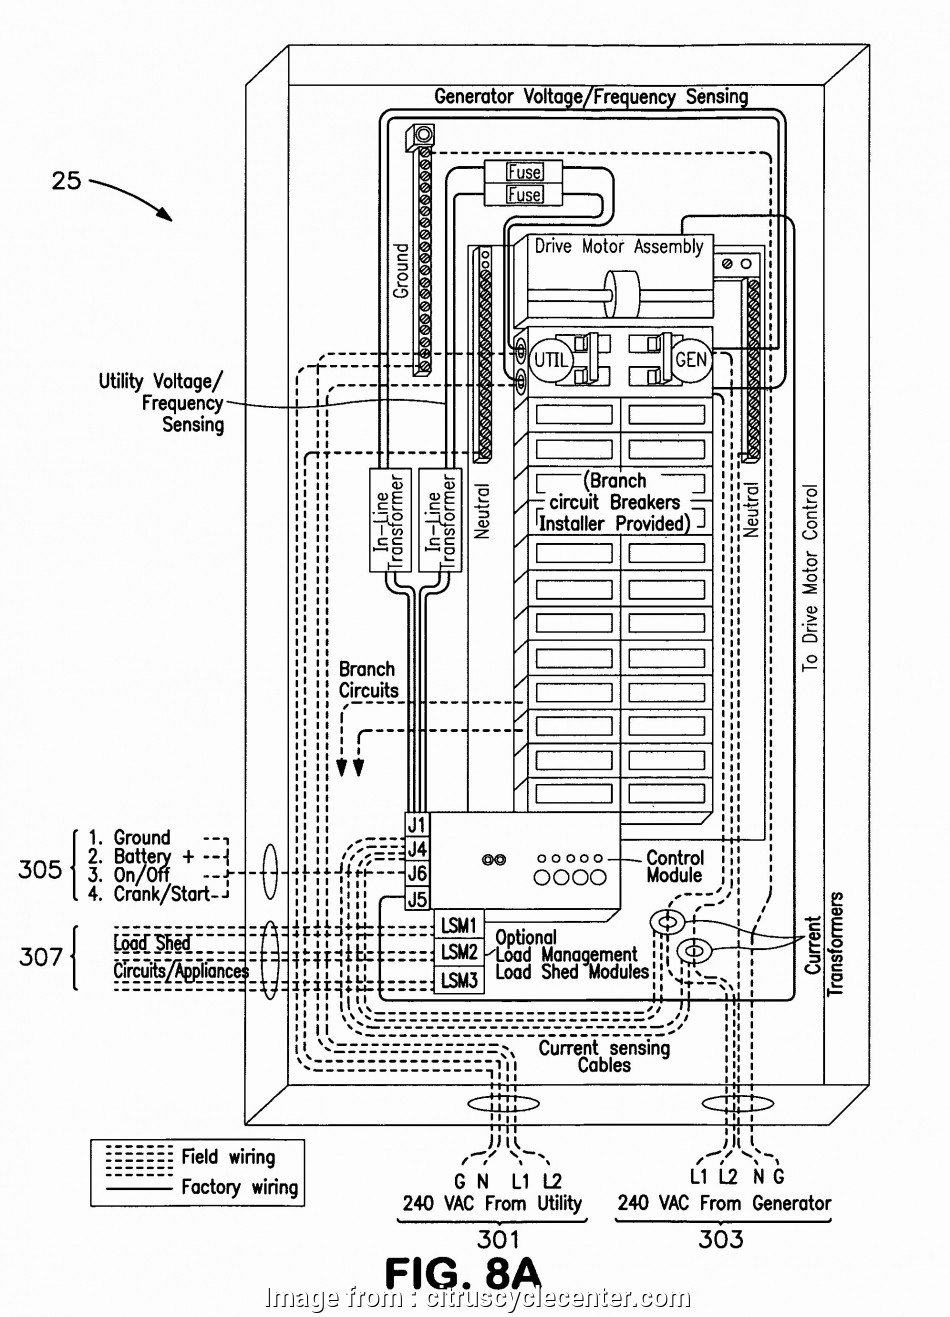 How To Wire A Generator Transfer Switch Diagram Best